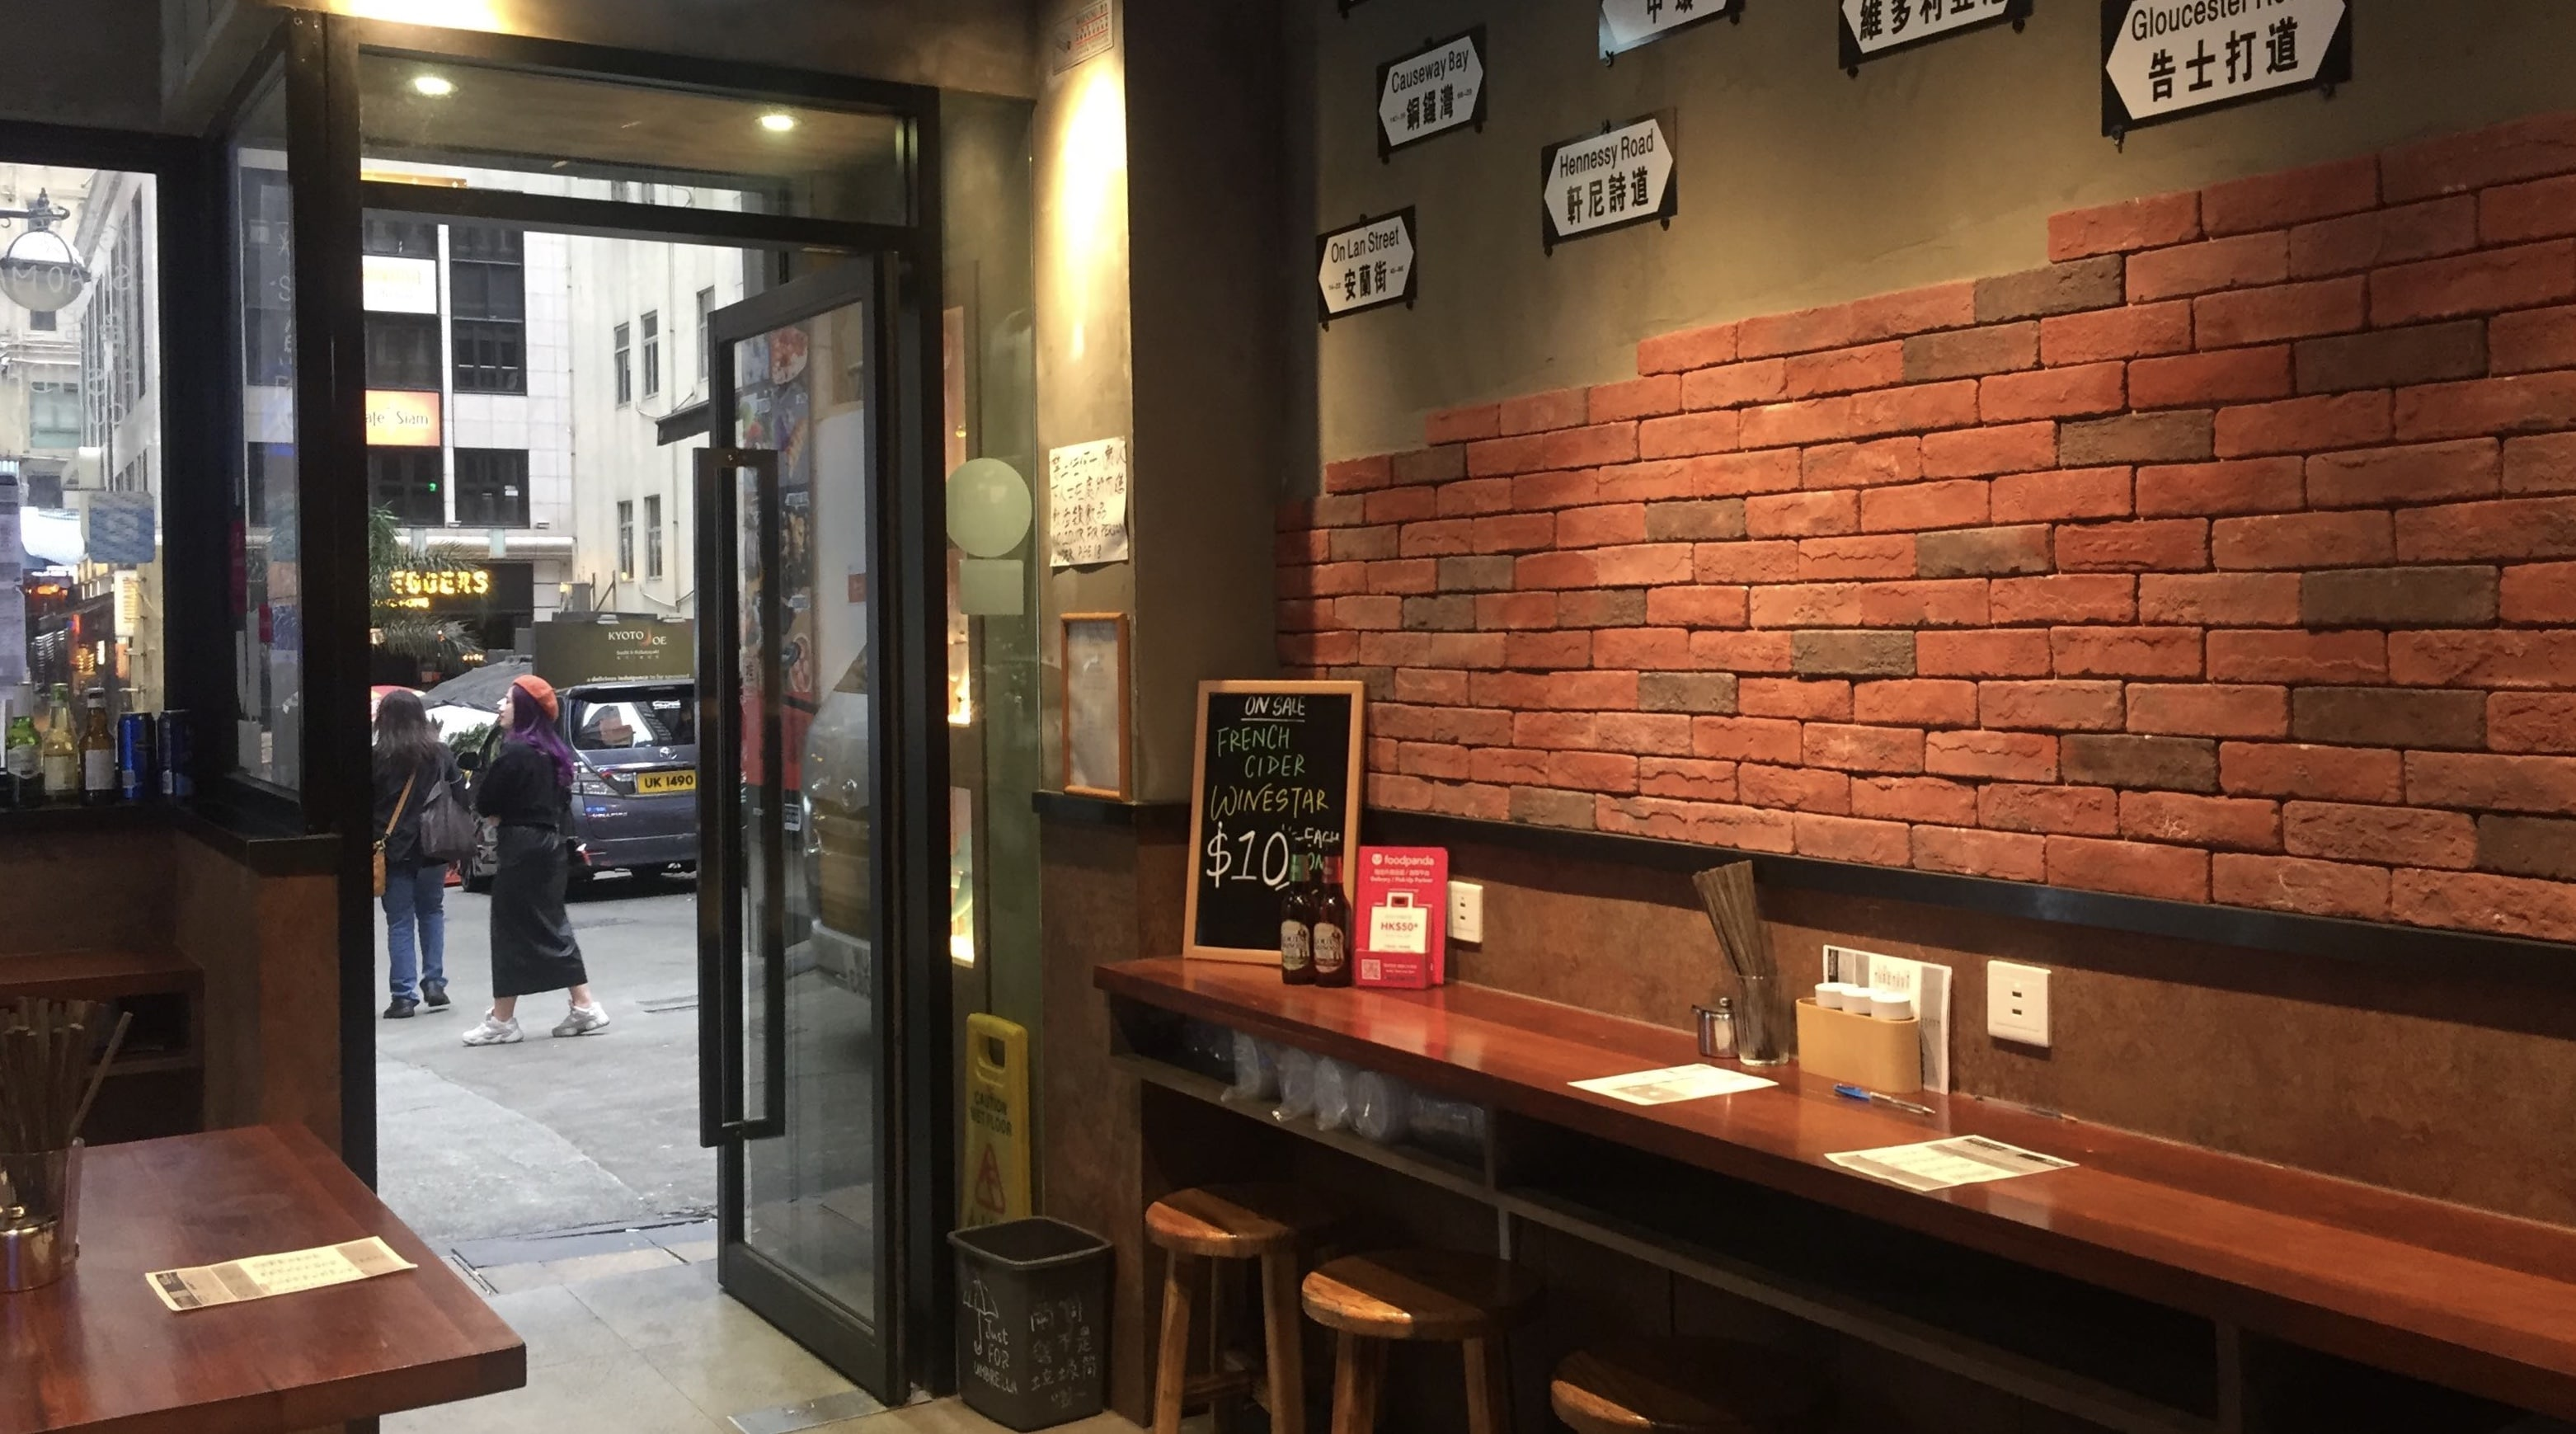 LKF Fitted Restaurant for Sale with Lease in HK